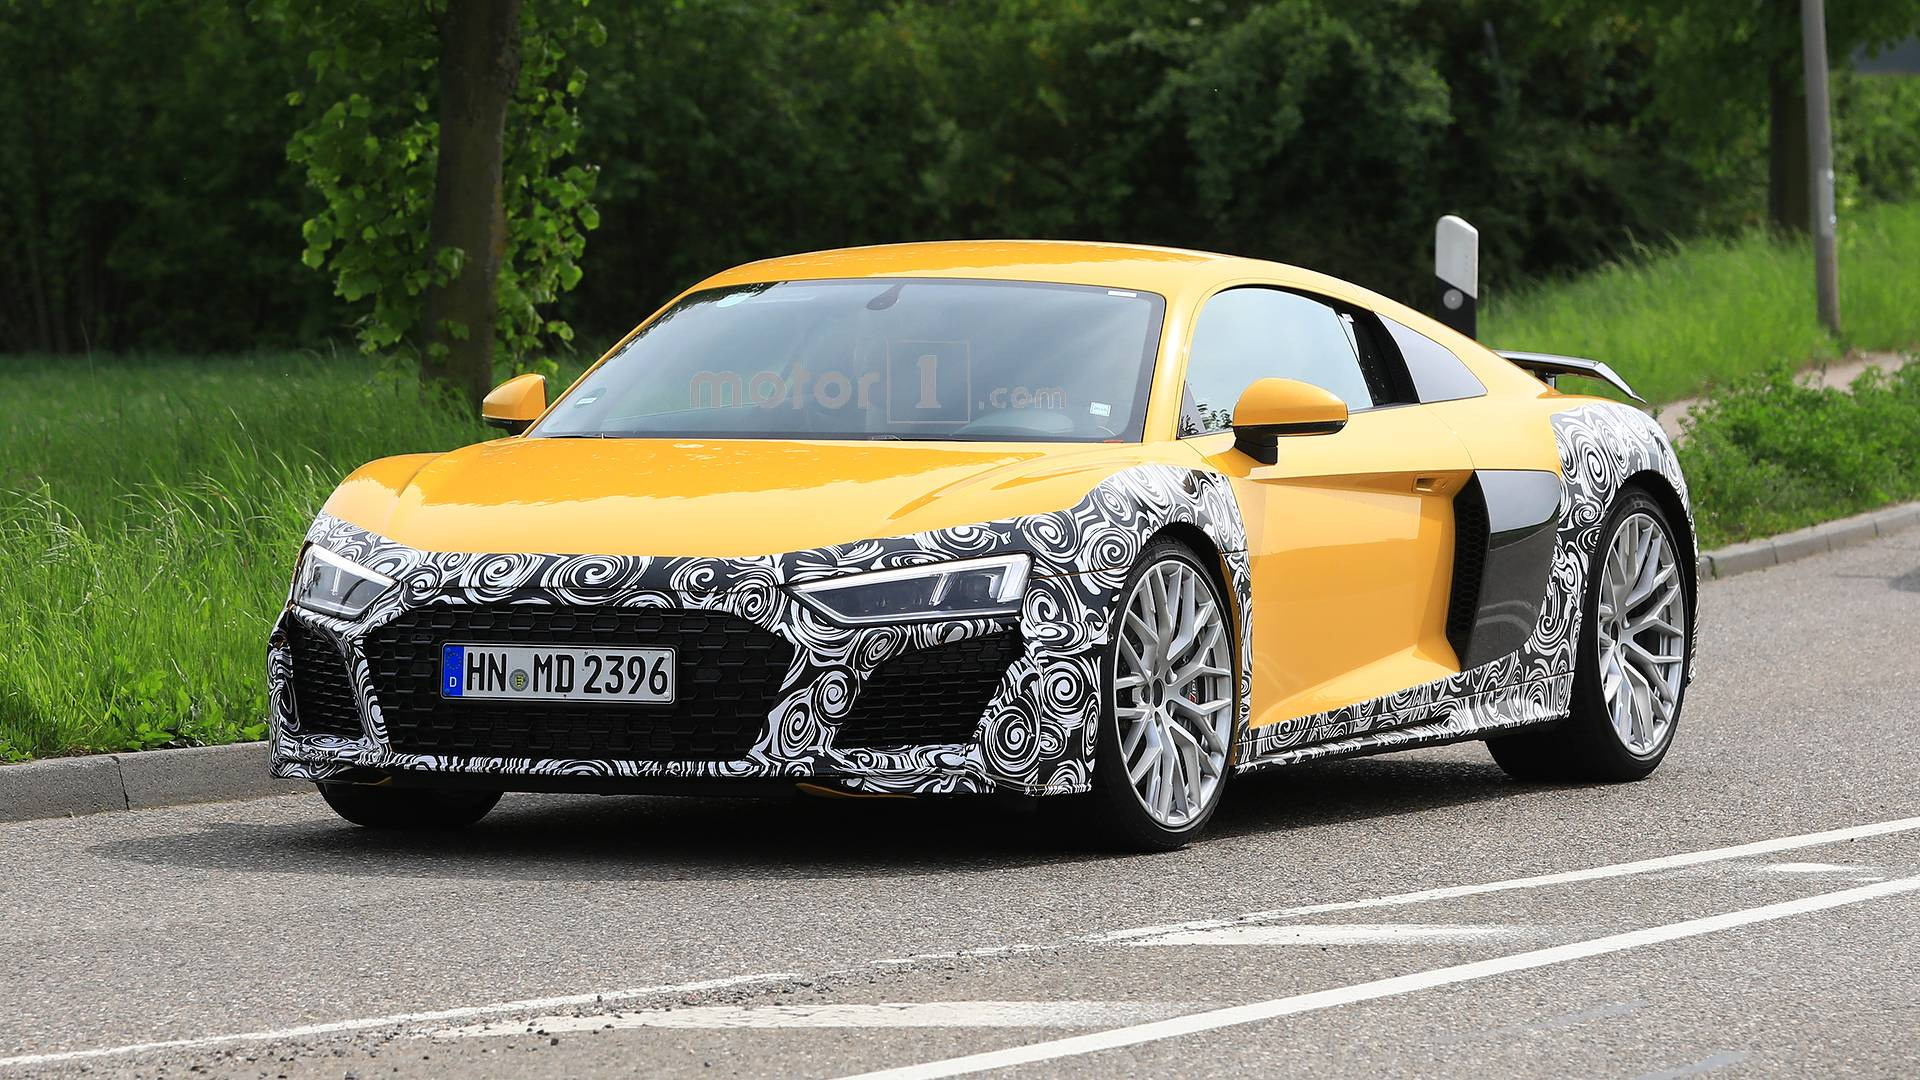 2015 - [Audi] R8 II / R8 II Spider - Page 14 Audi-r8-refresh-spy-photos